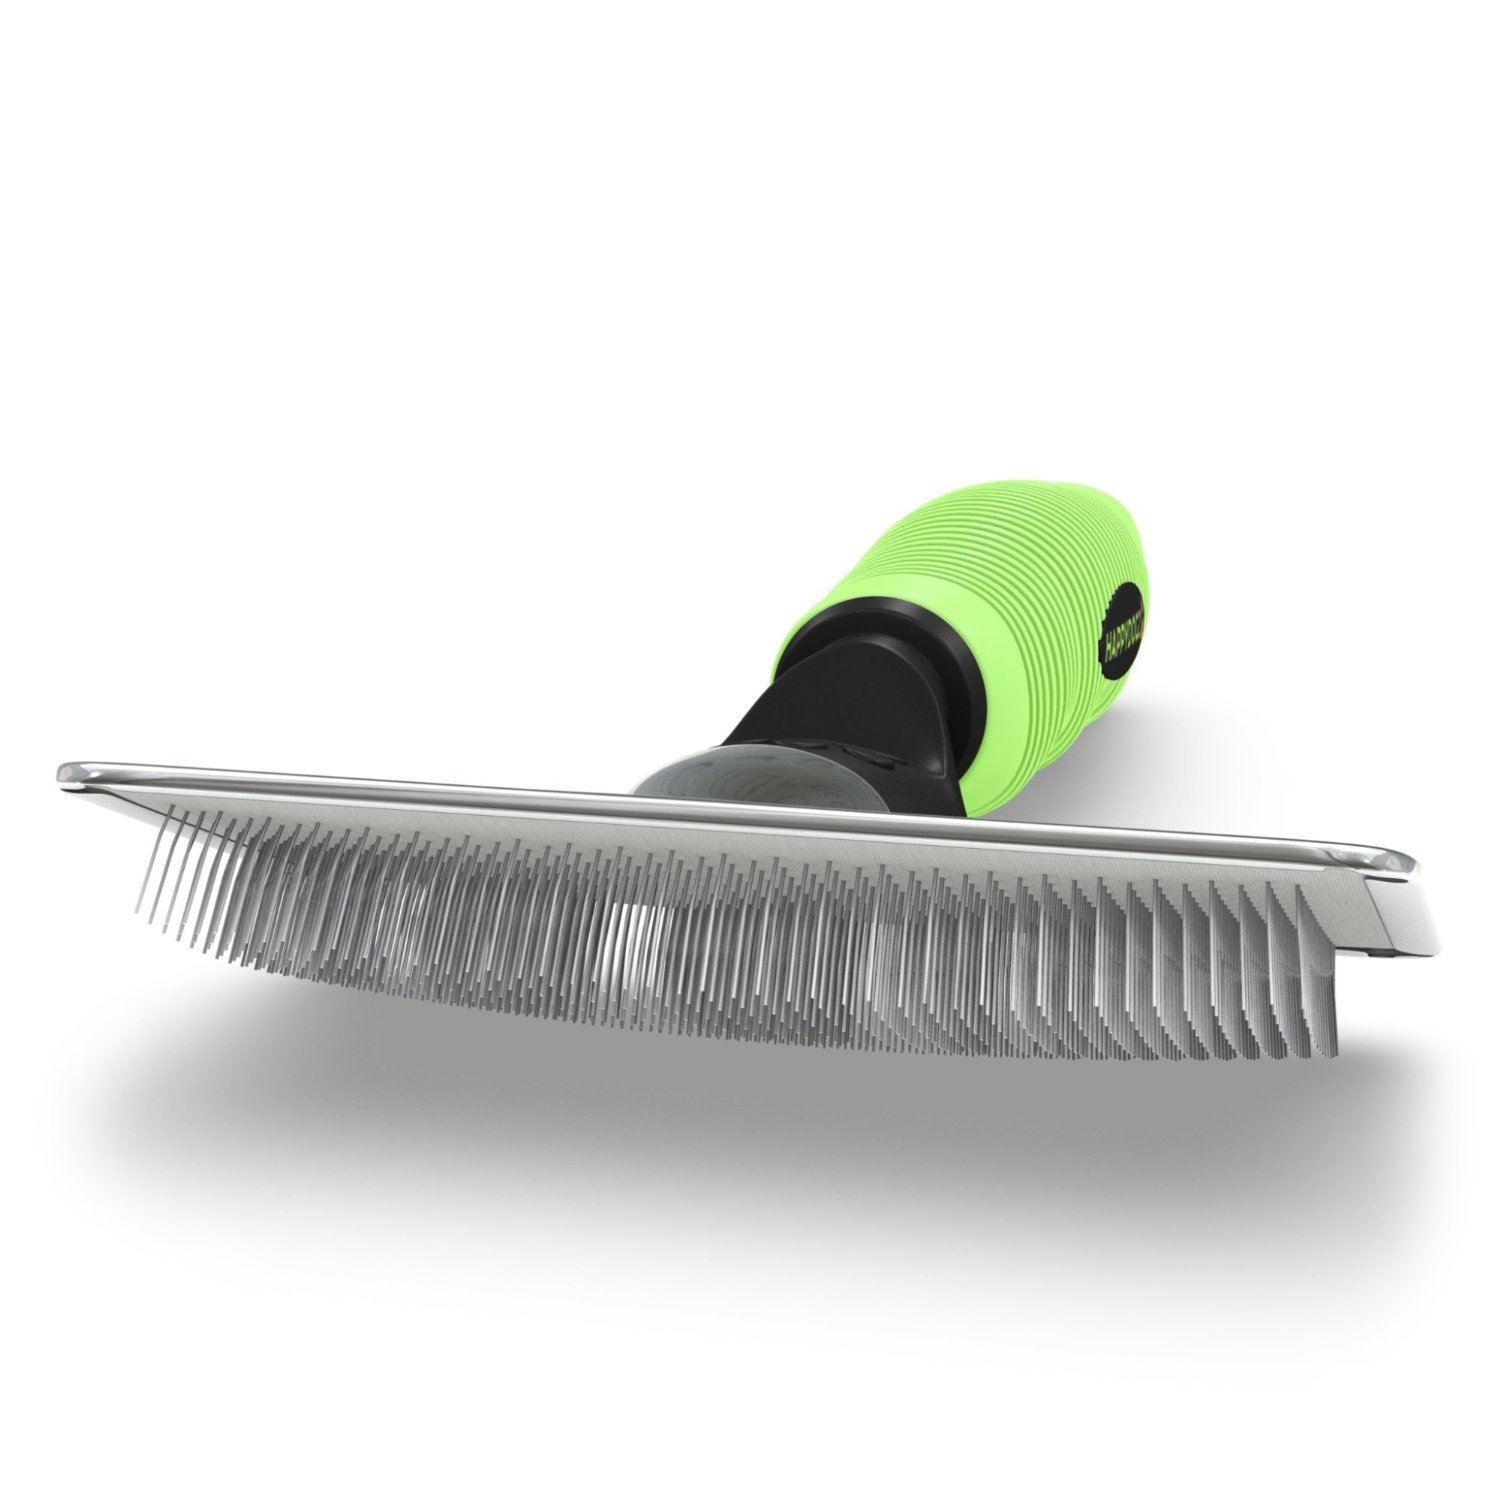 Pet Brushes : Amazon.com: Pro Slicker Brush for Dogs and Cats - Pet ...